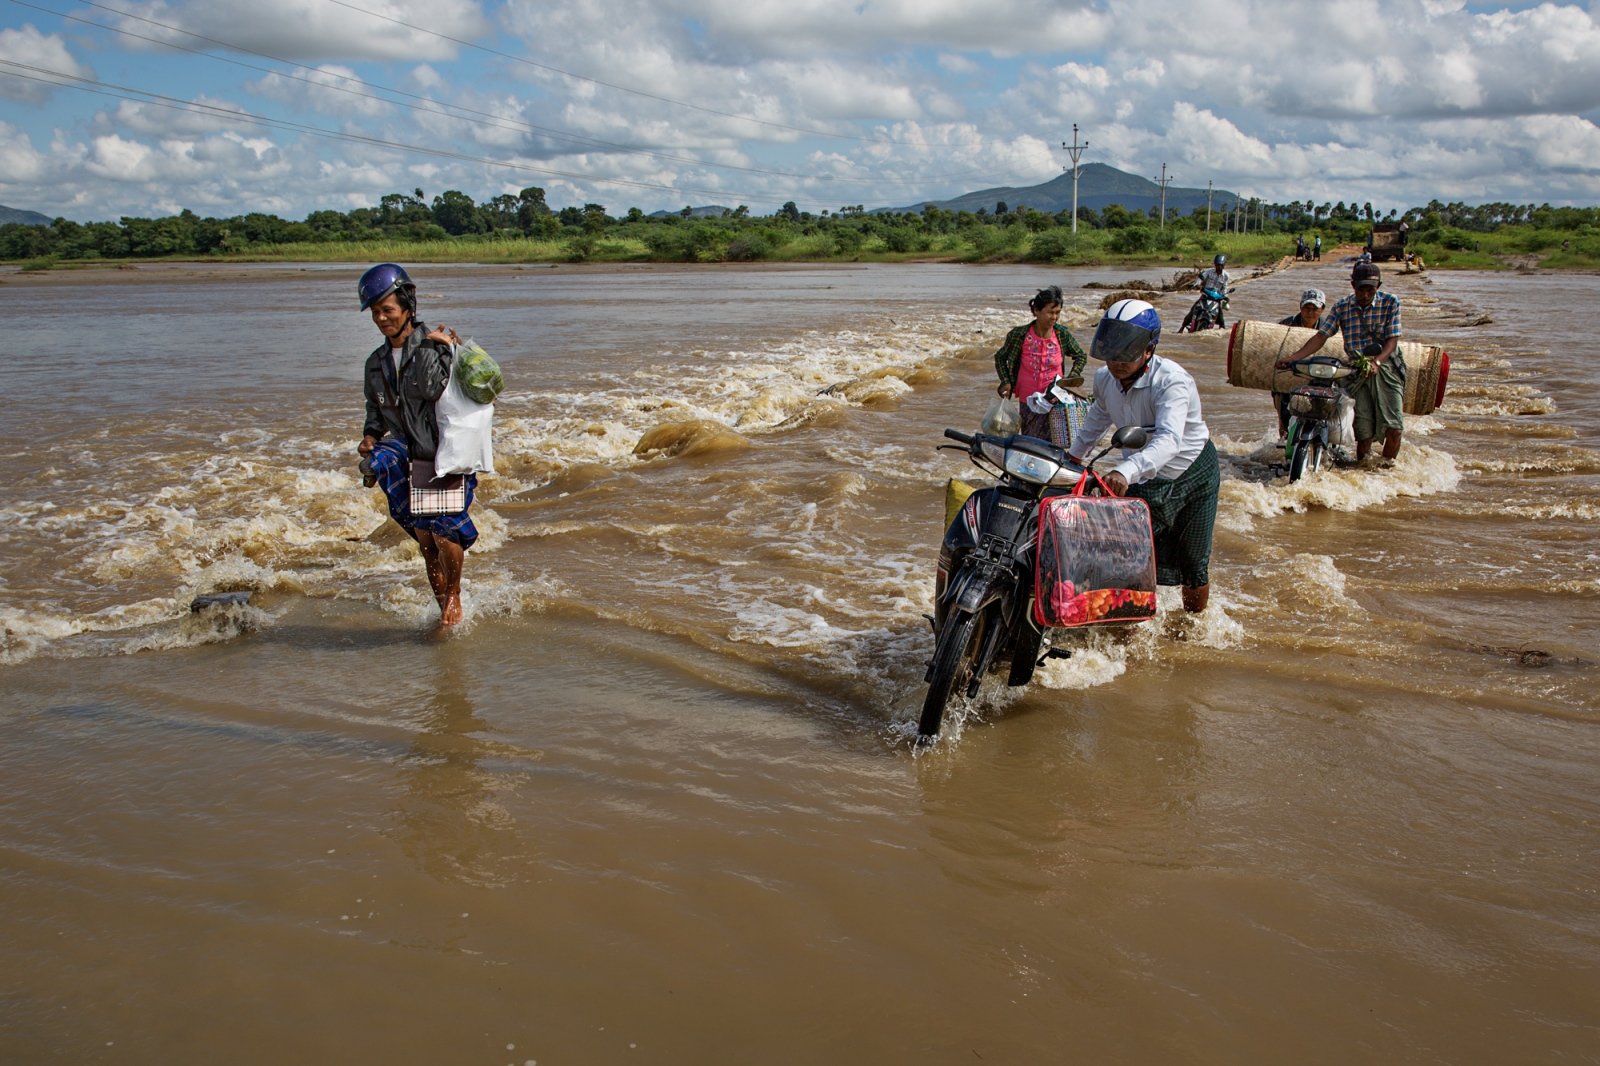 A group of travelers forge their way across a flooded road to a small village two hours from Bagan. Poor infrastructure makes rural life particularly difficult.